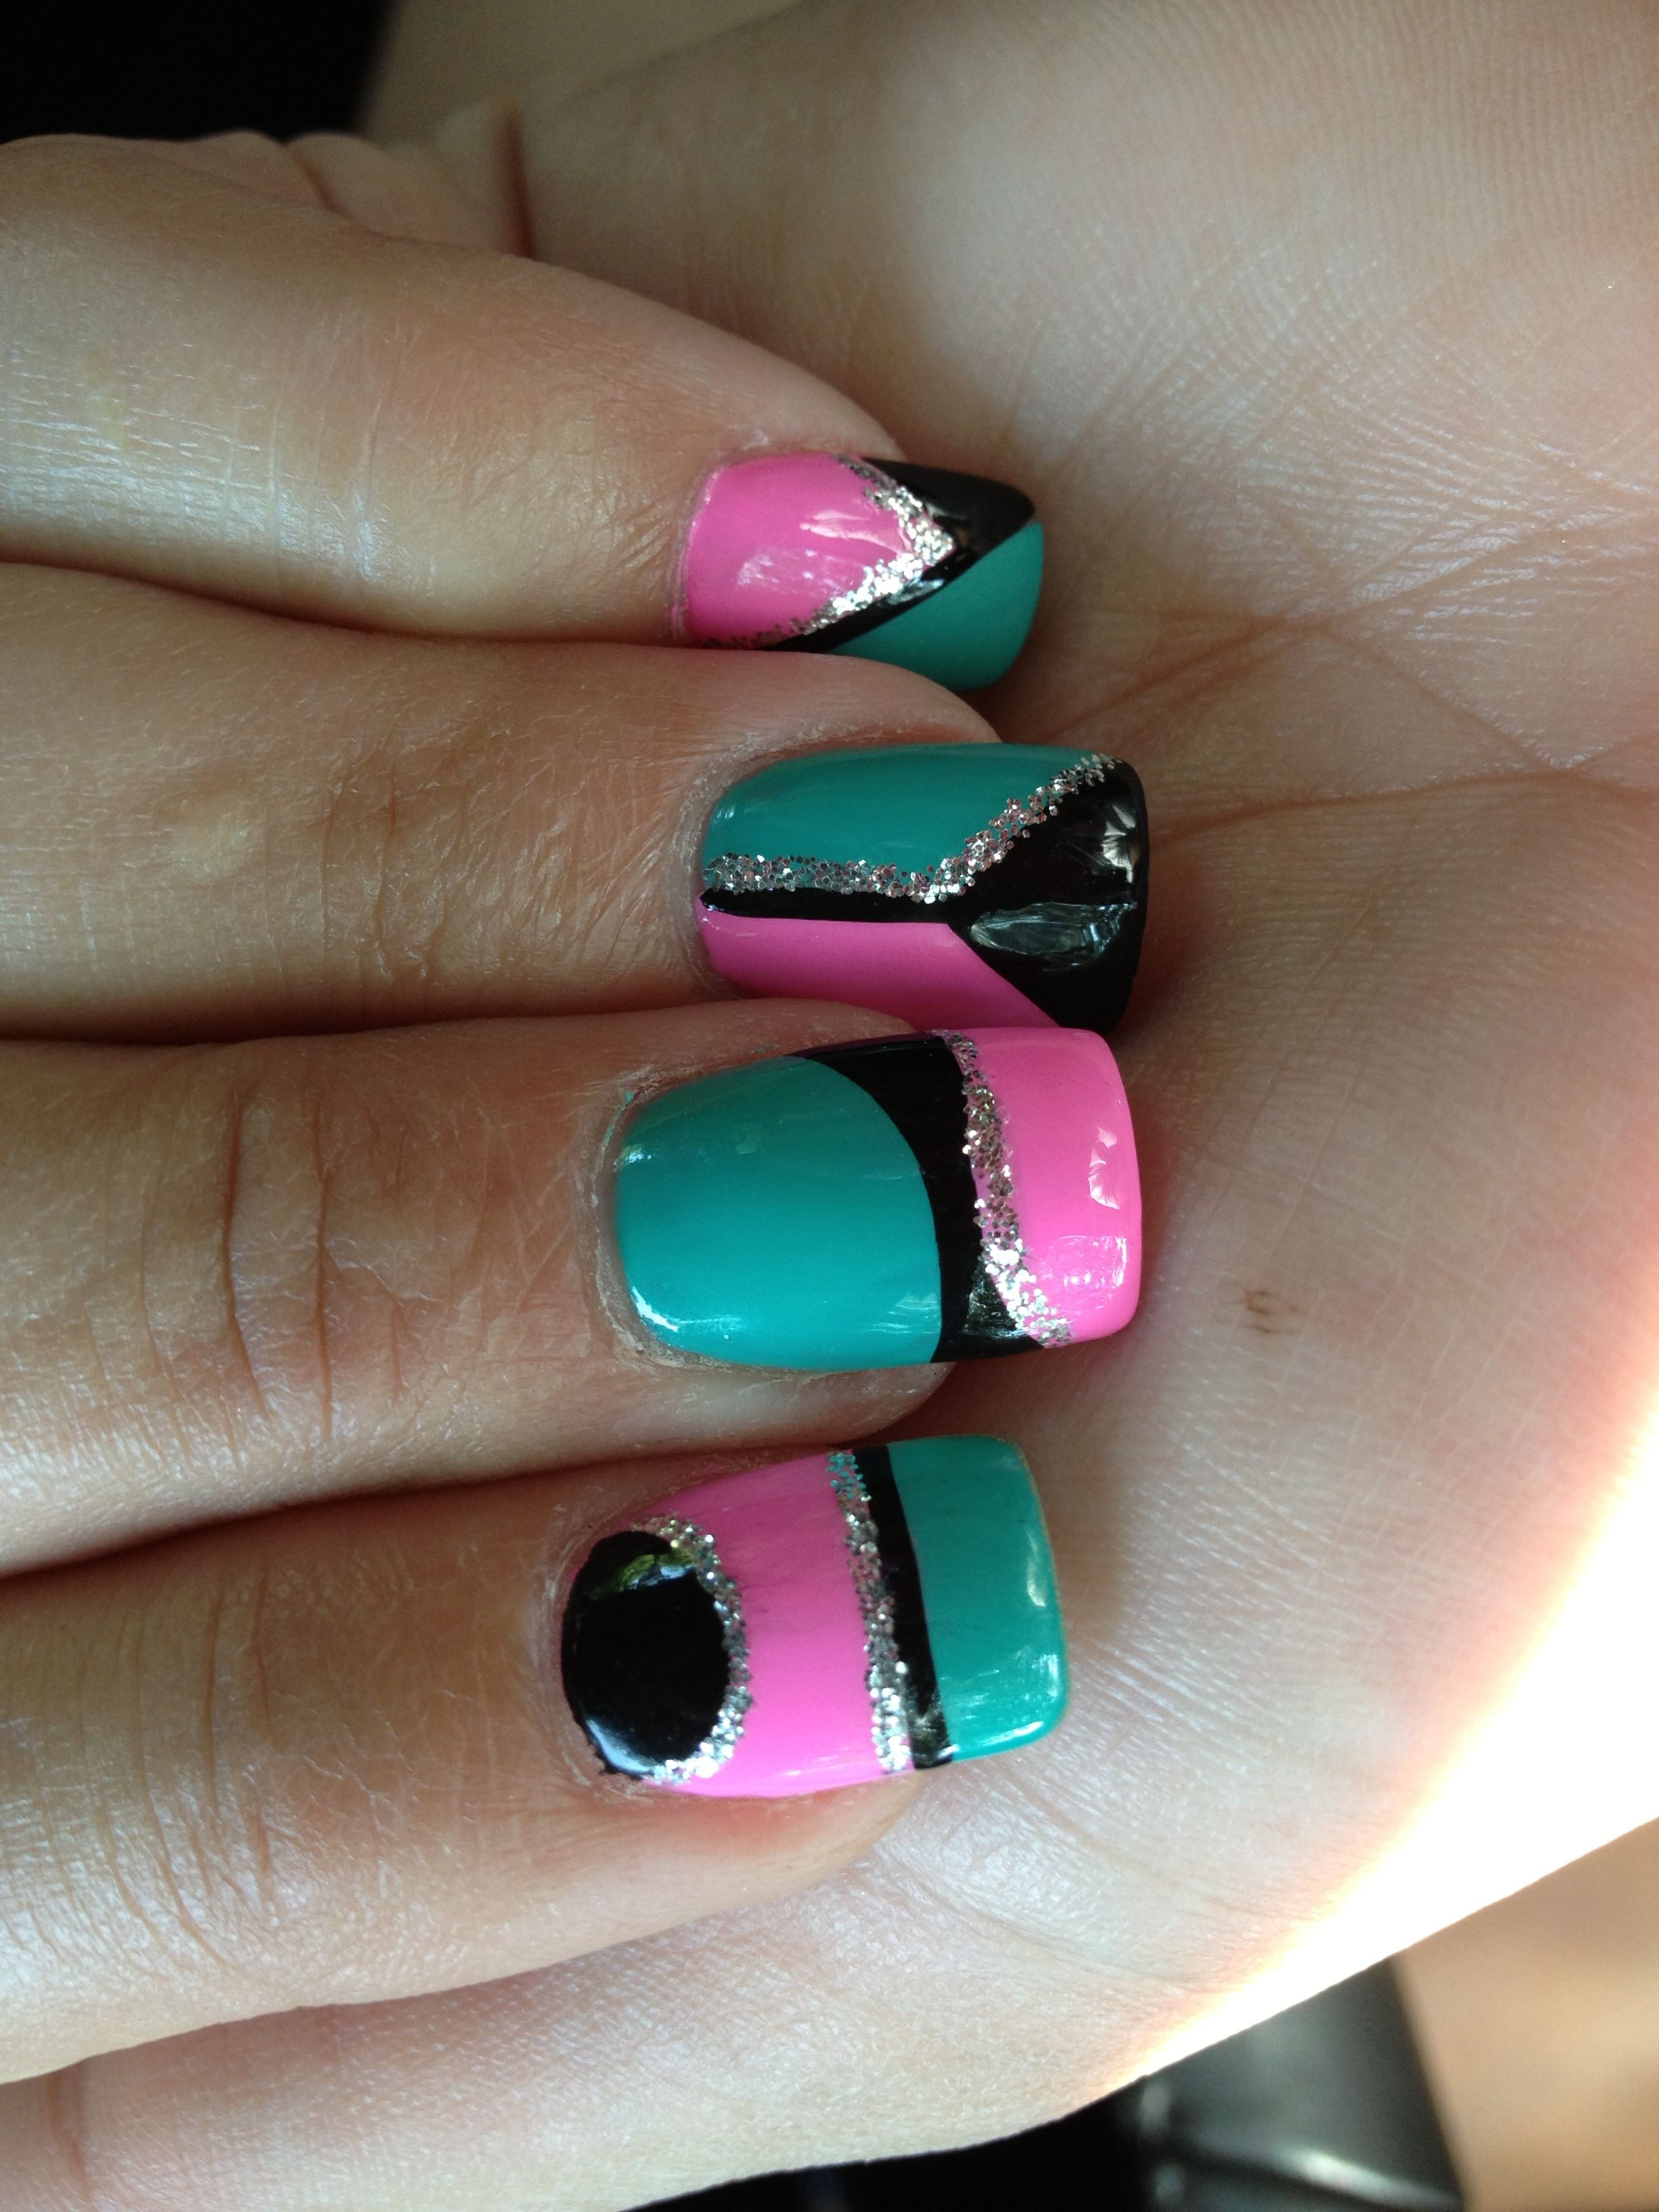 pink teal and black abstract nails